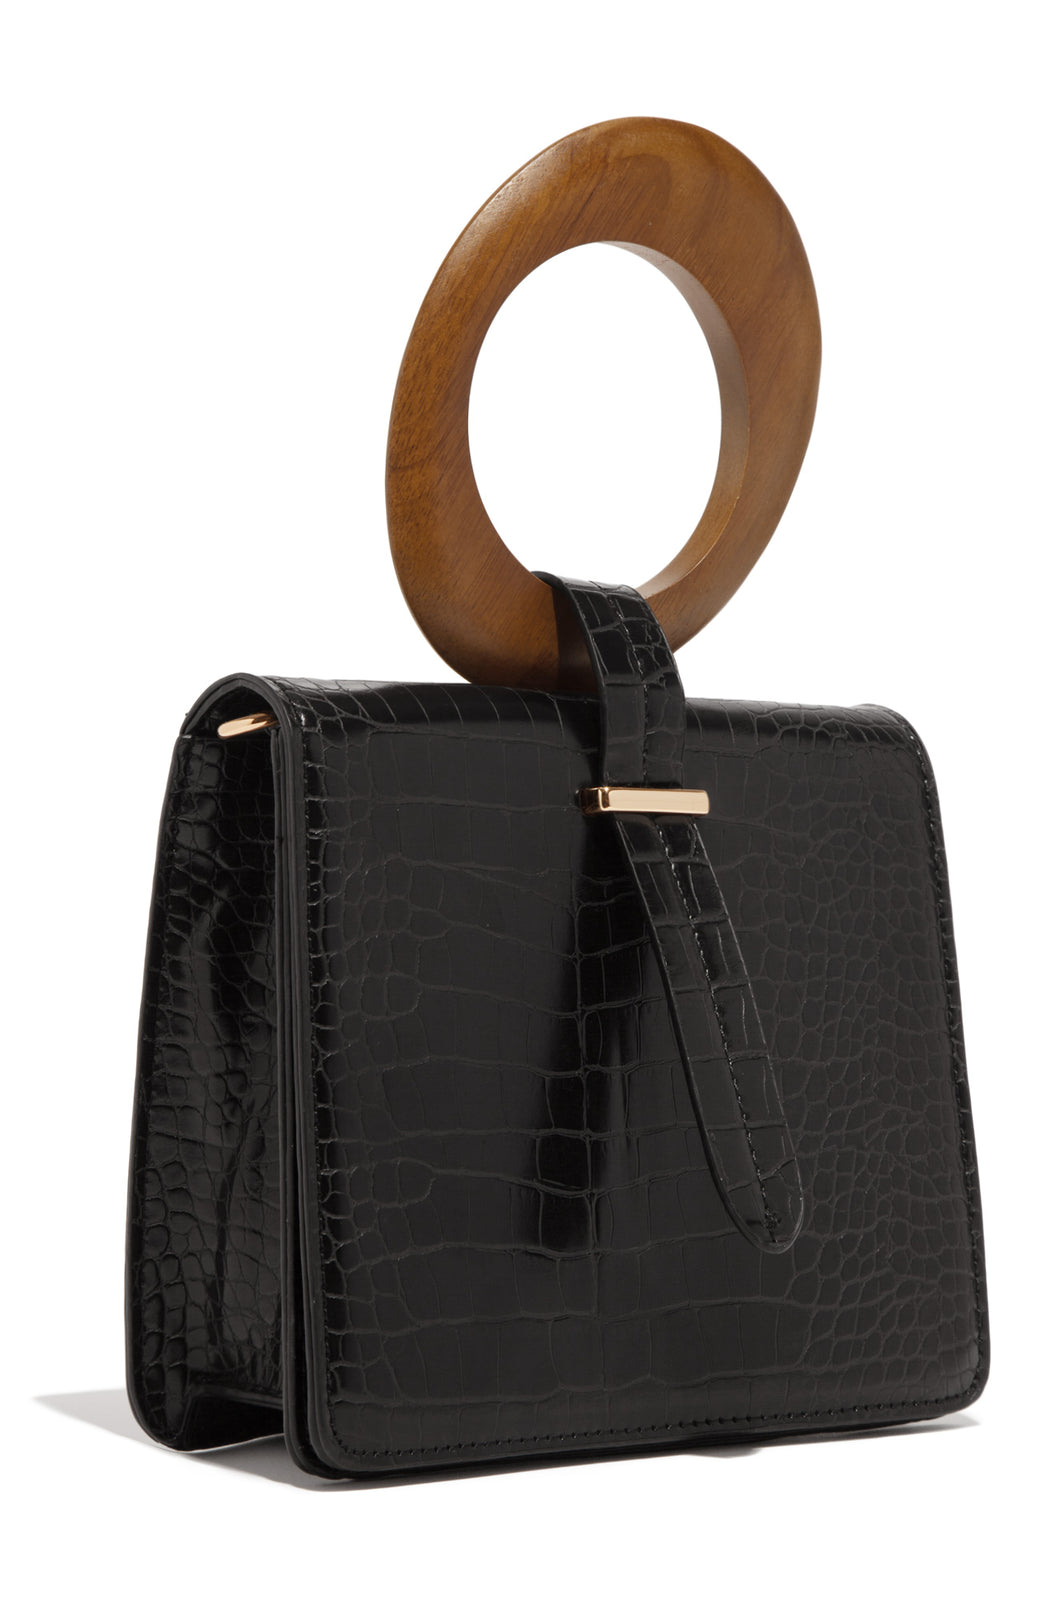 Le Weekend Bag - Black